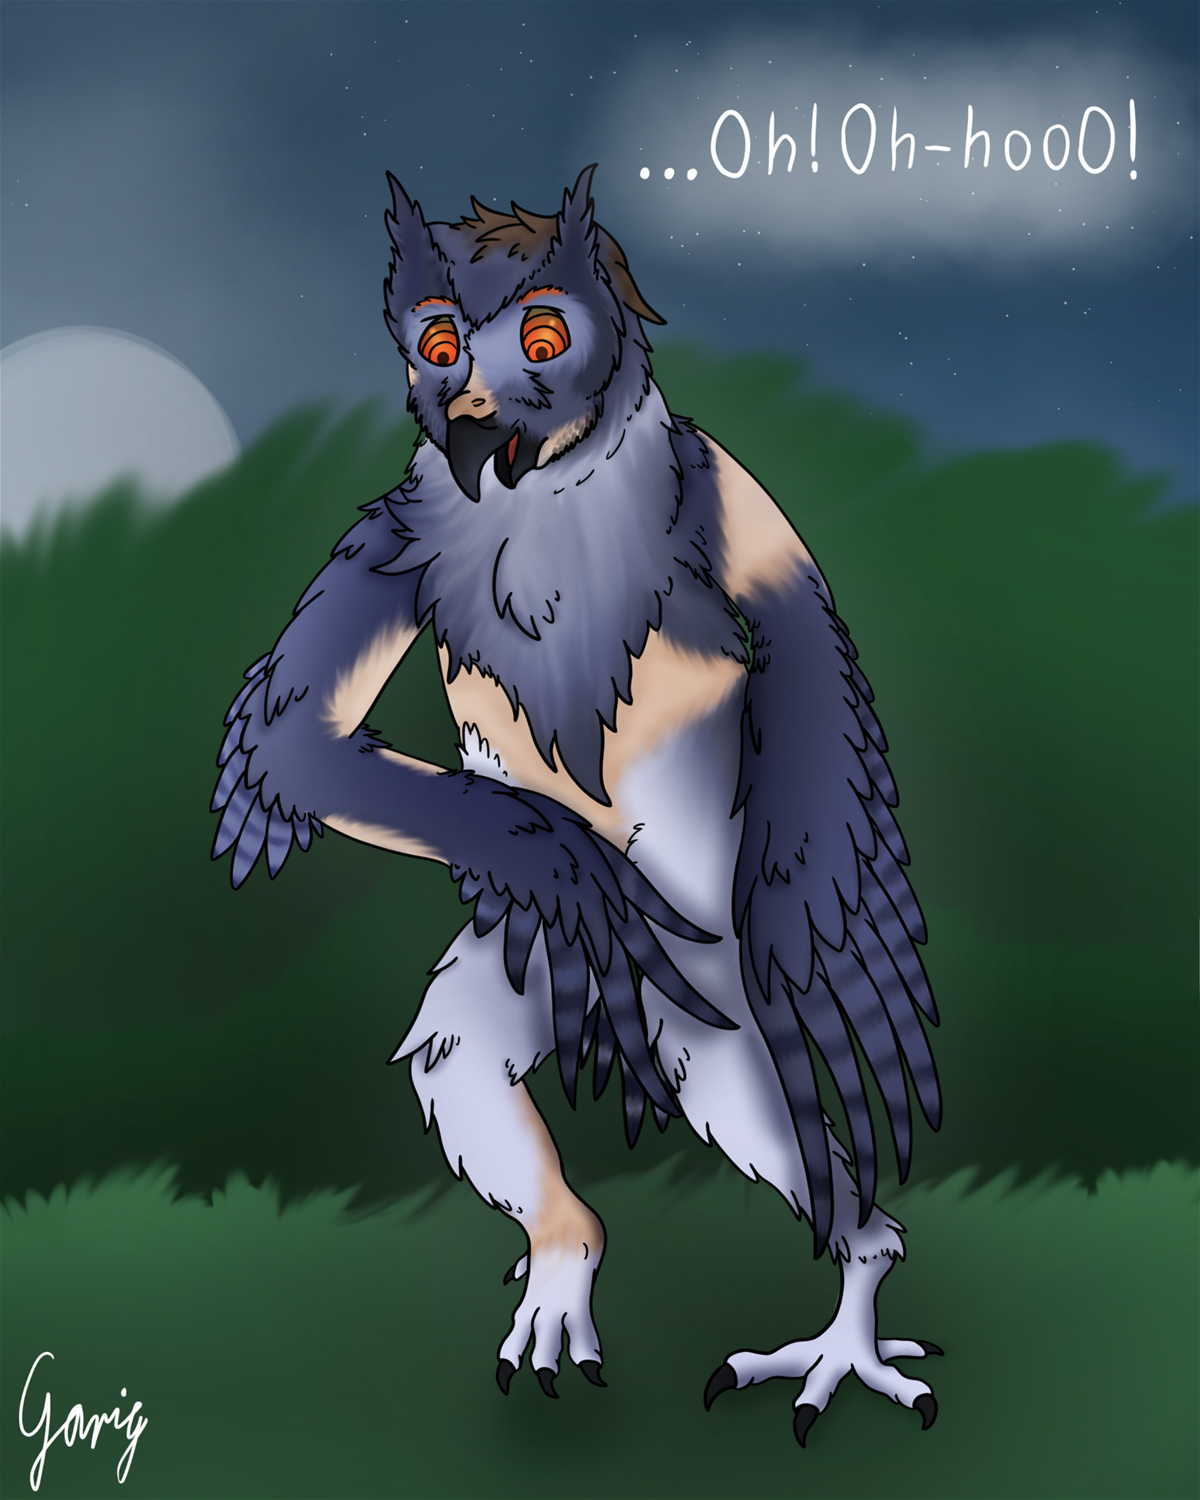 Night-time Hypnowlsis by Garig1510